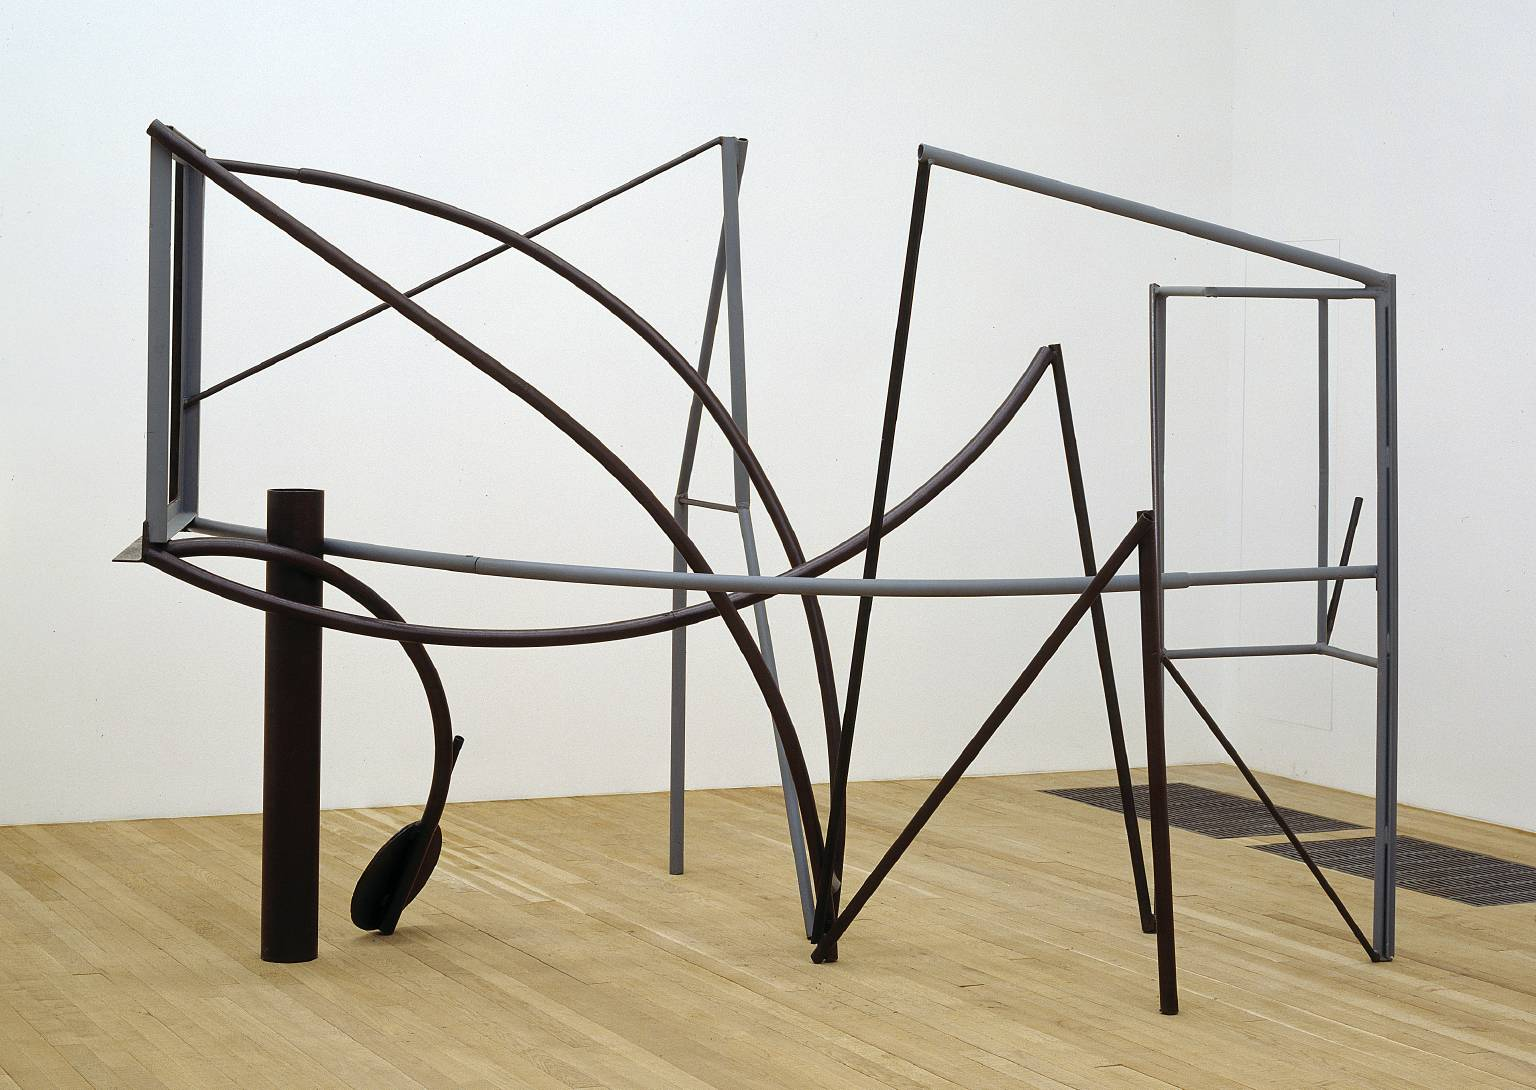 Emma Dipper 1977 by Sir Anthony Caro born 1924